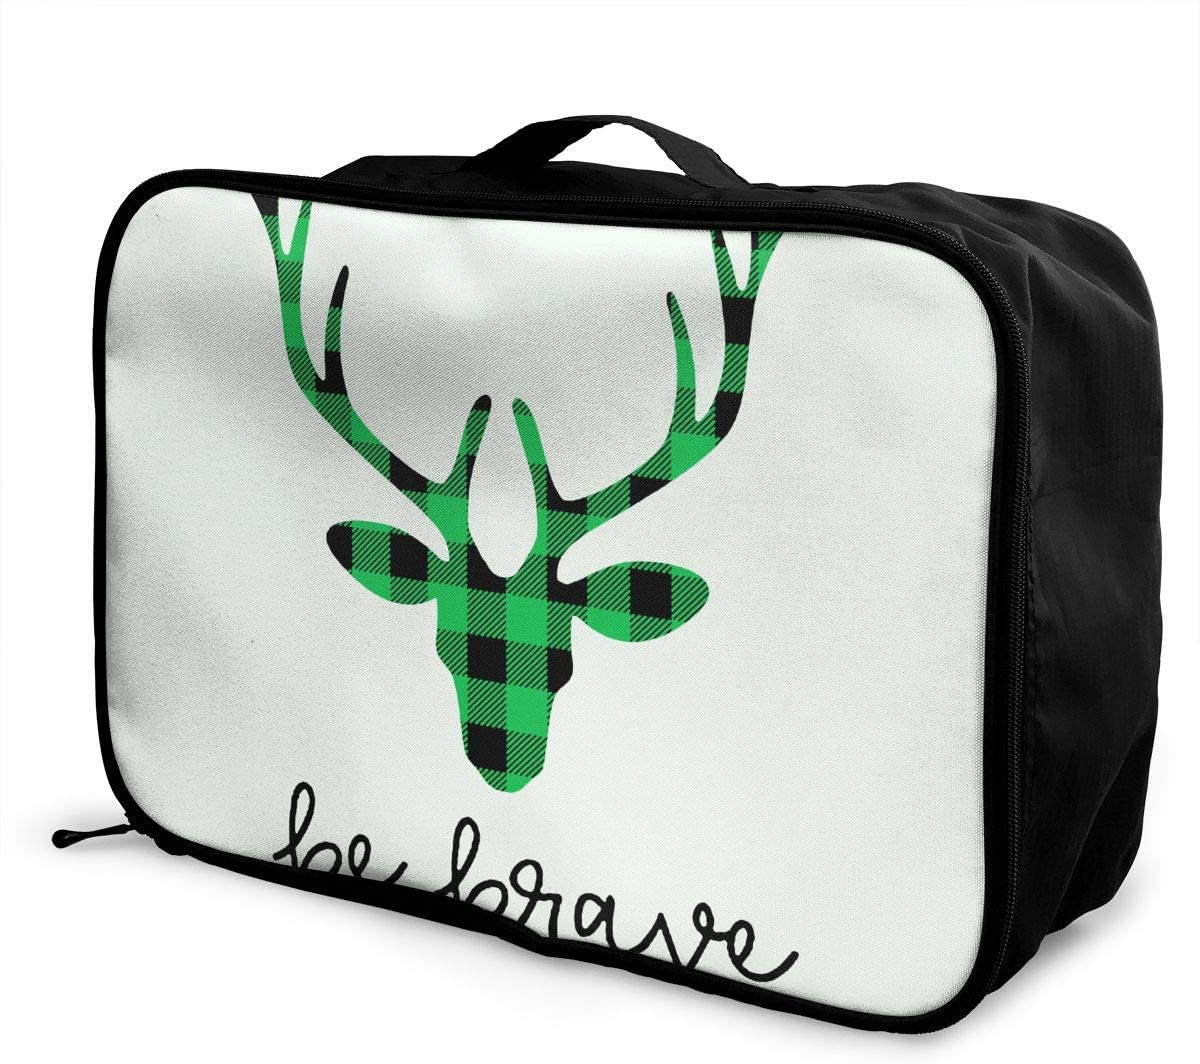 Green And Black Buffalo Plaid Moose Travel Carry-on Luggage Weekender Bag Overnight Tote Flight Duffel In Trolley Handle